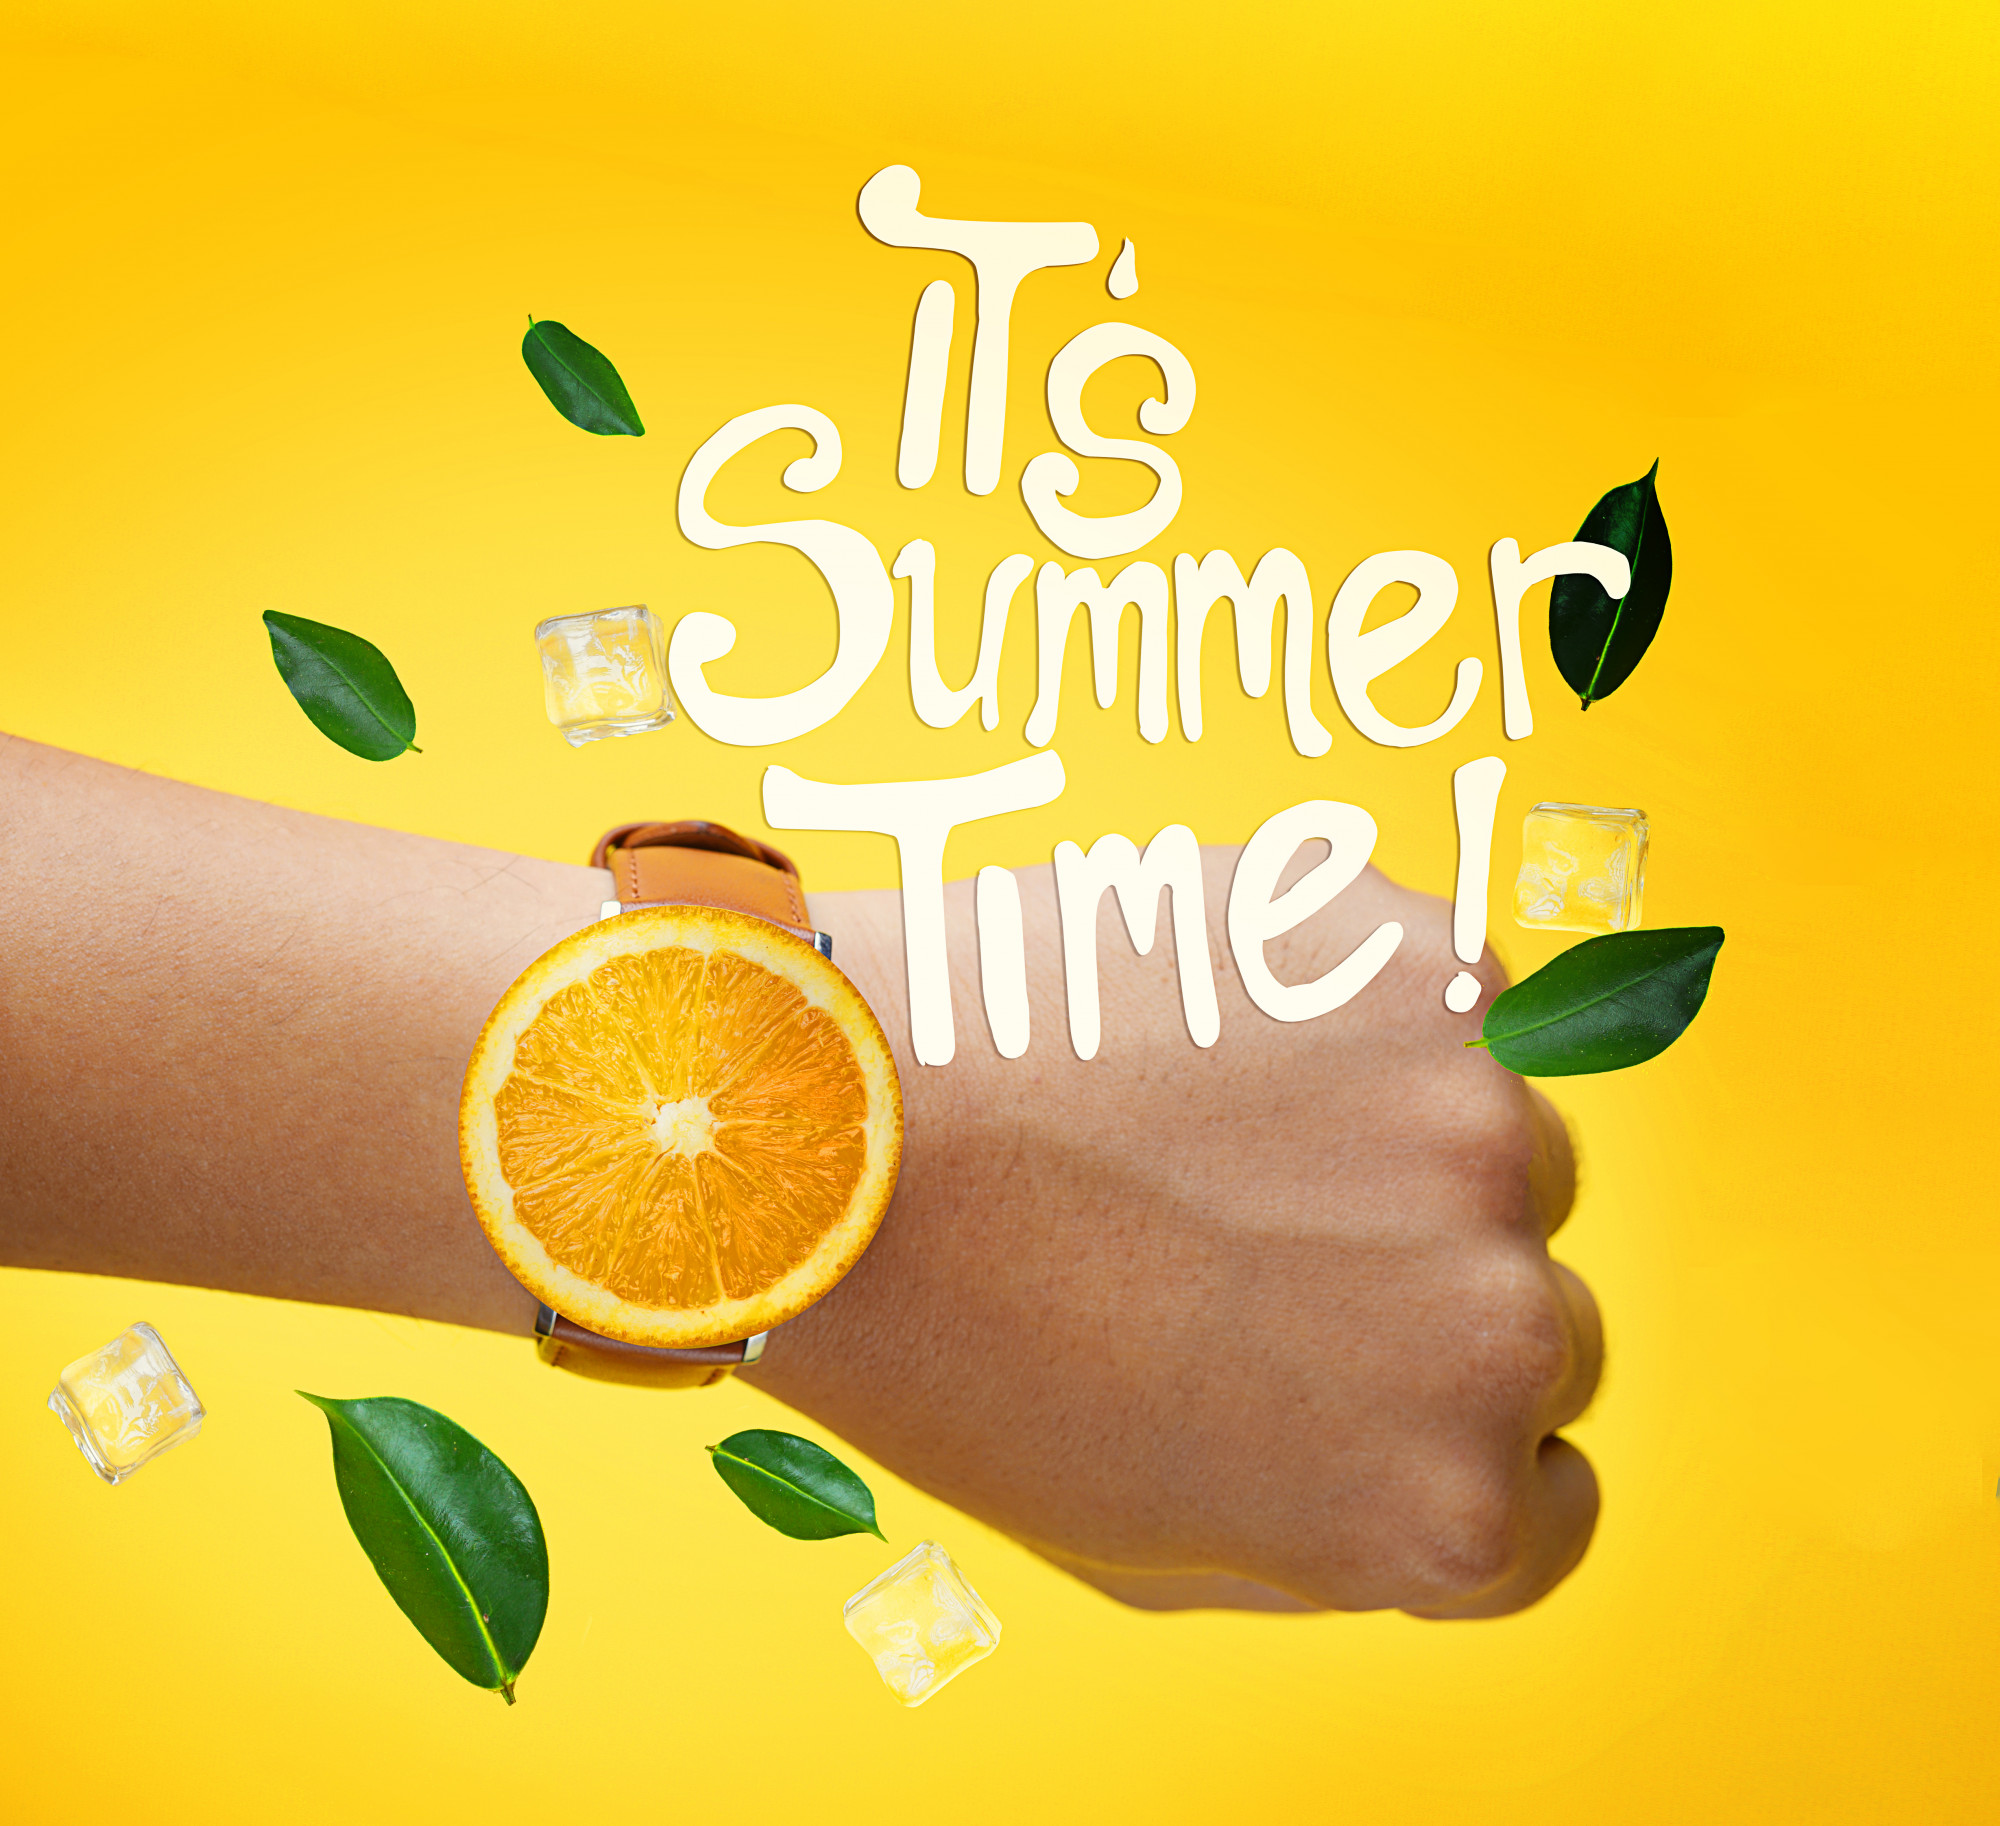 It's Summer Time Typography. Male Hand Wearing Fruit Orange Watch Green Leaves and Ice Cub